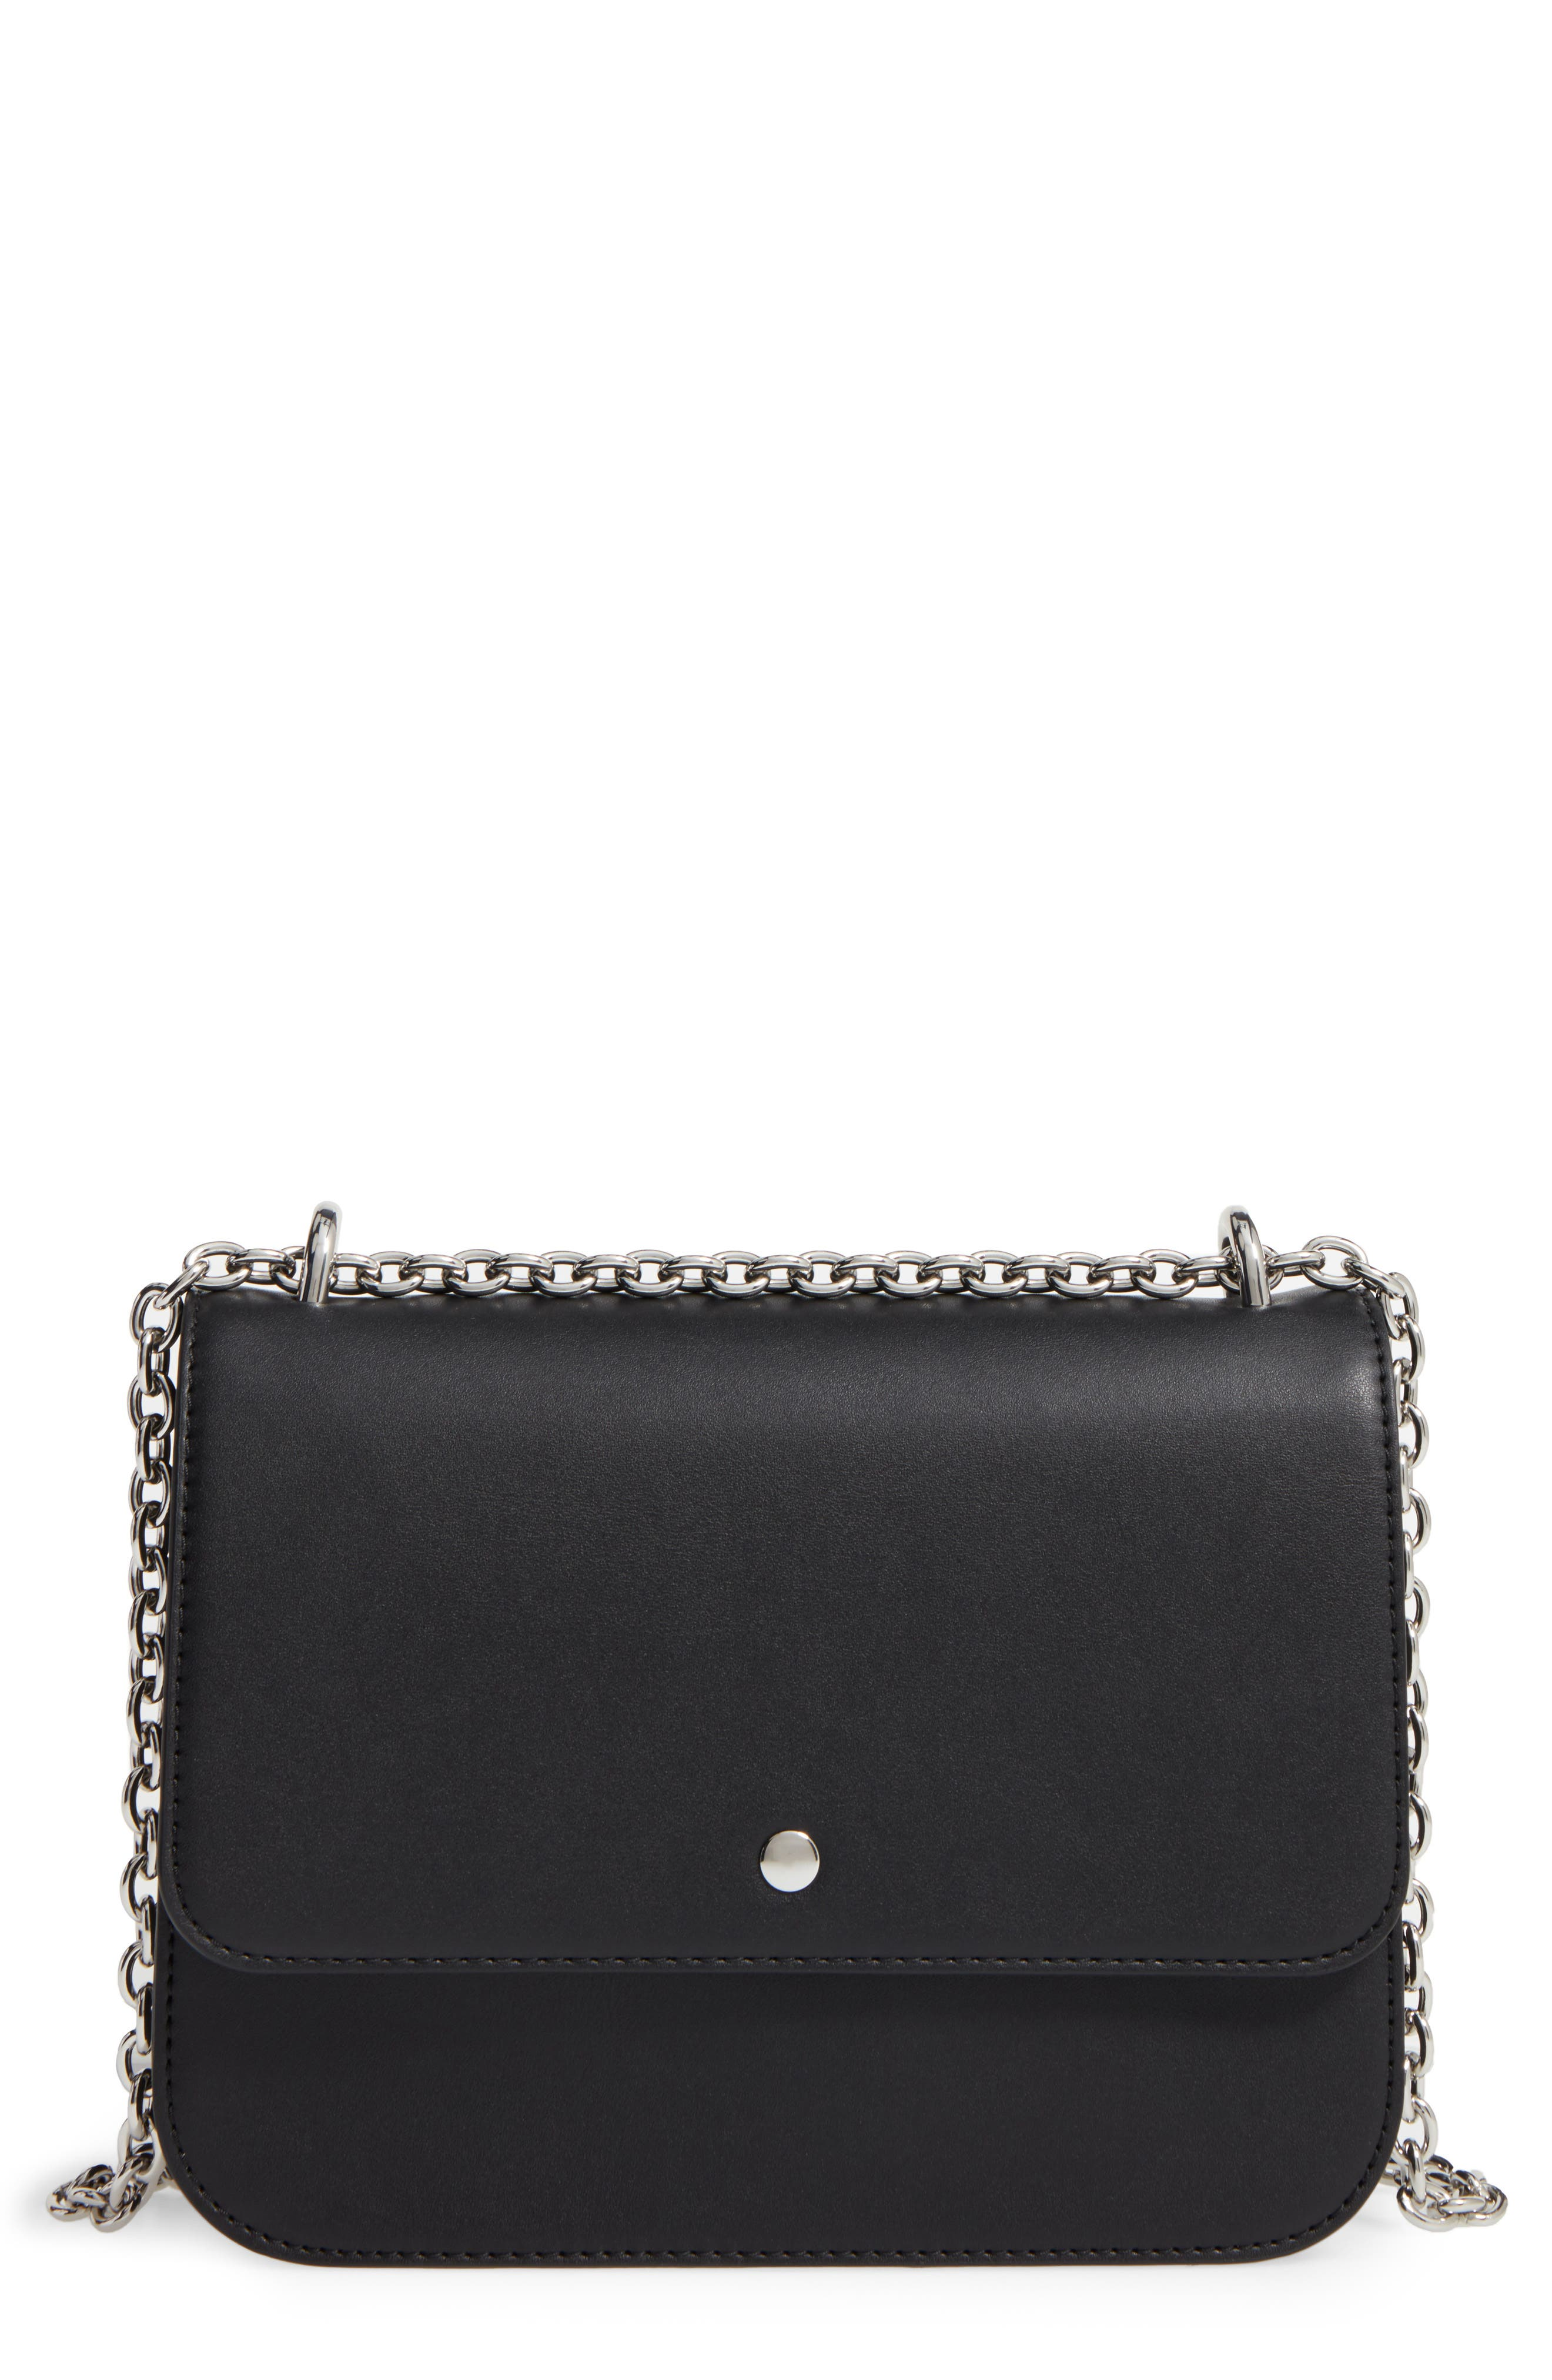 Alternate Image 1 Selected - Chelsea28 Dahlia Faux Leather Shoulder Bag